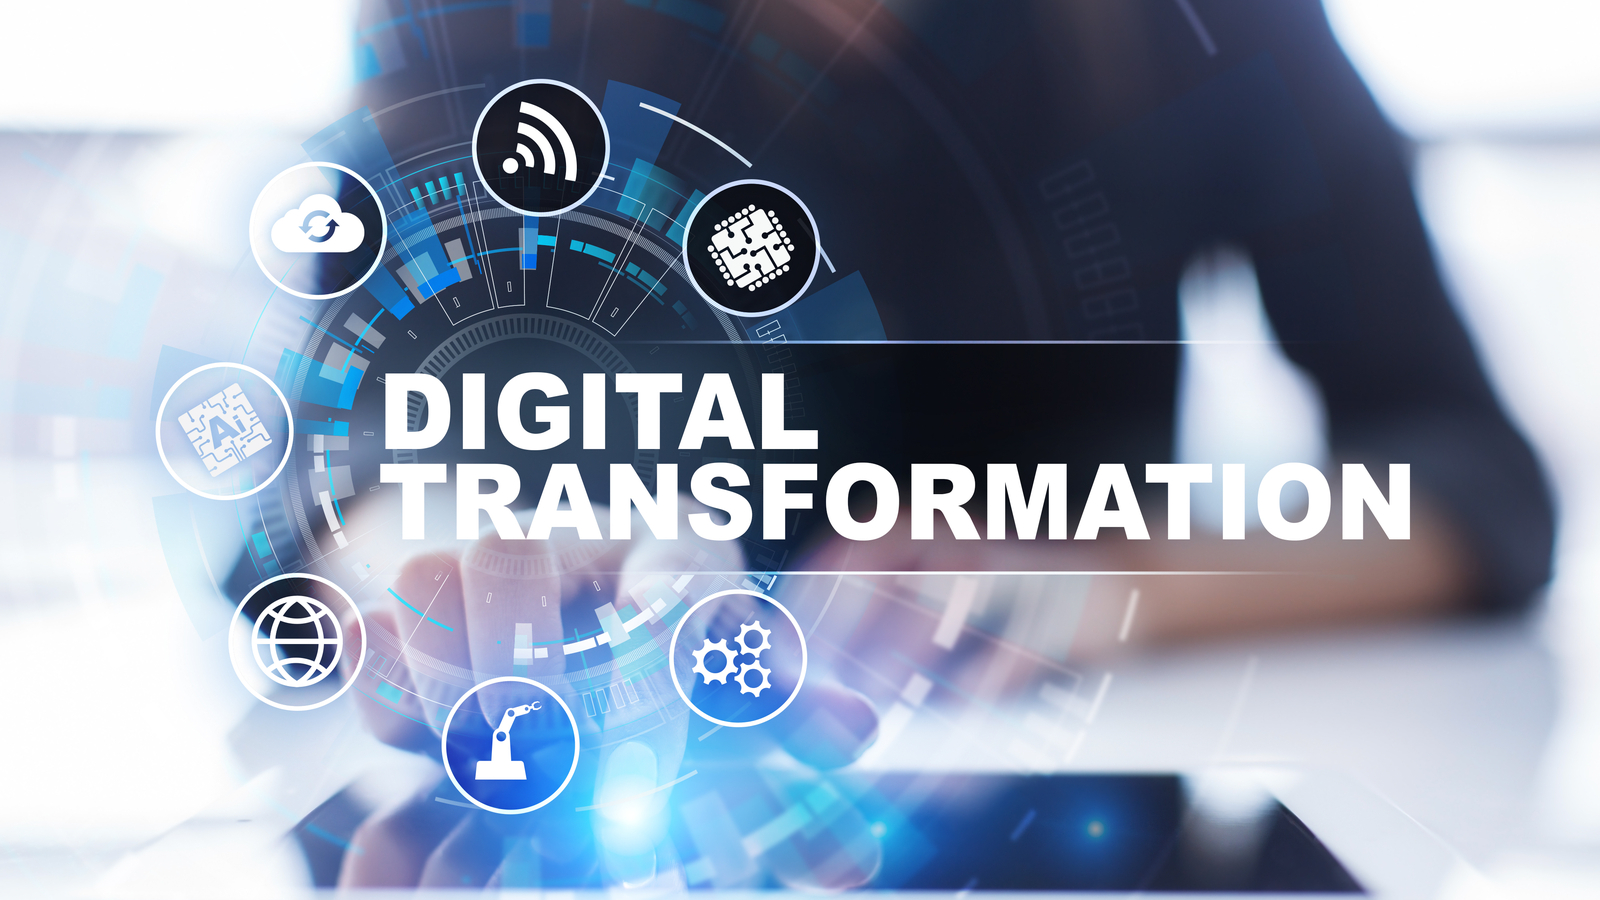 Failed Digital Transformation Projects Costs Businesses Big